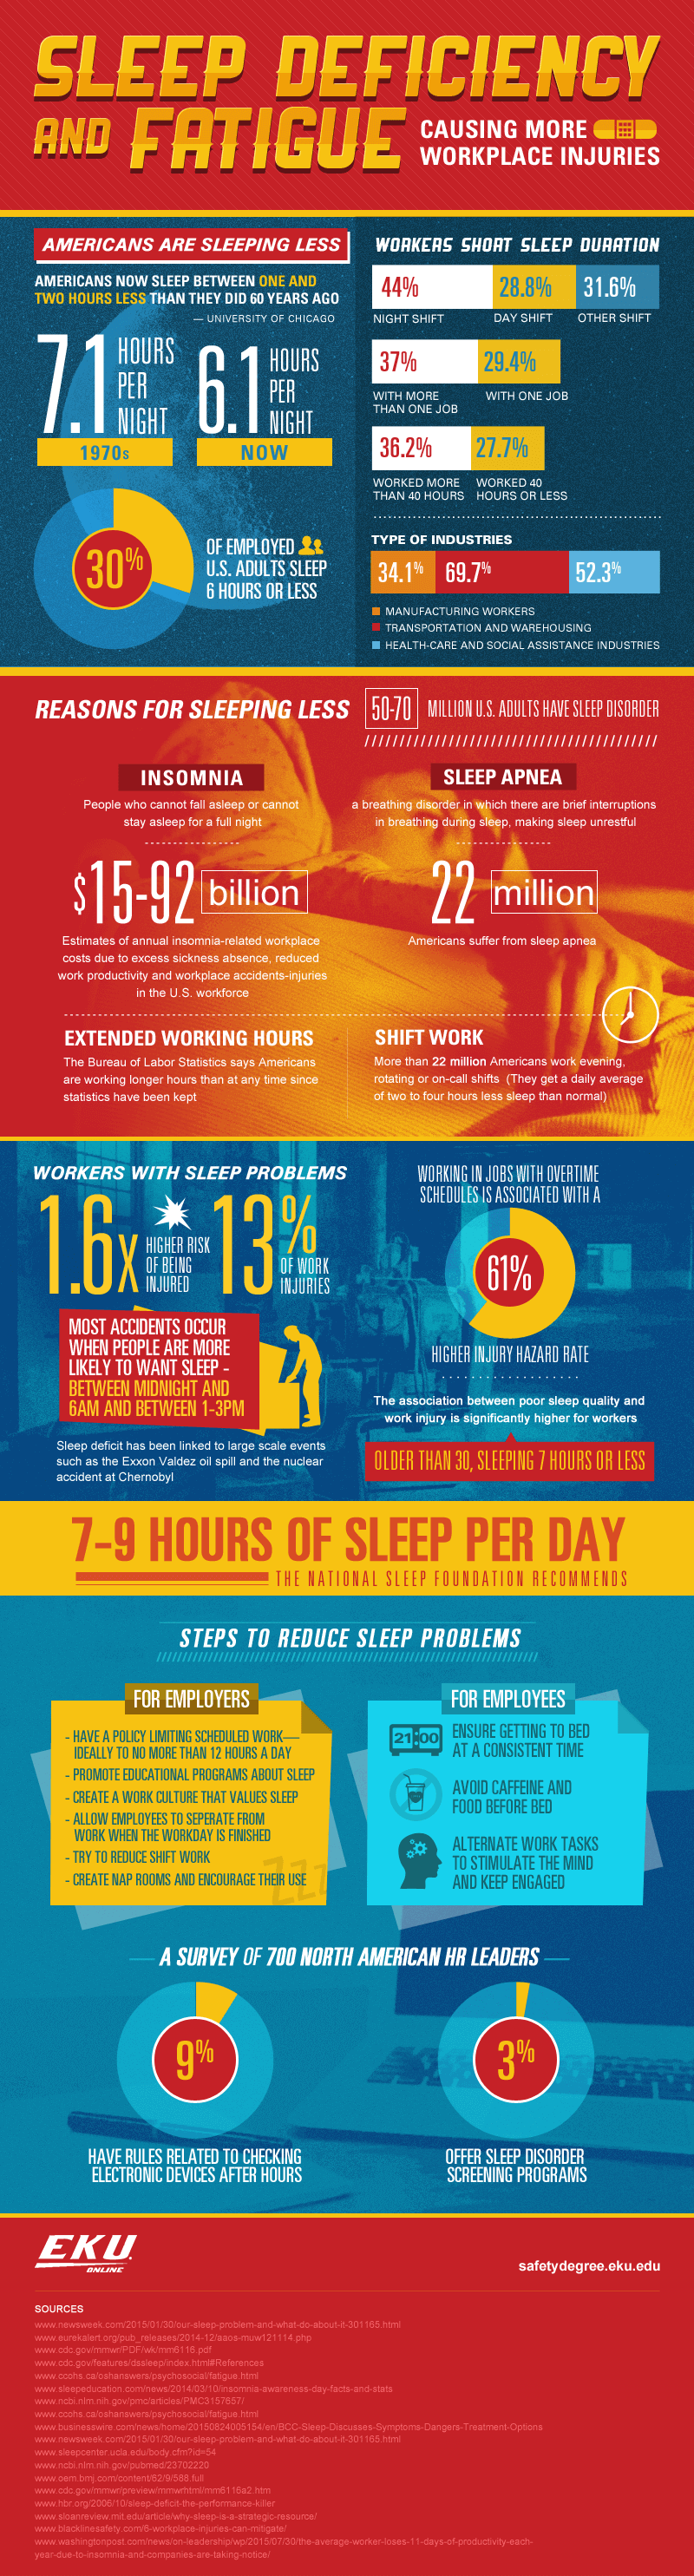 Workplace Injuries Are Caused By Lack Of Sleep! - Infographic